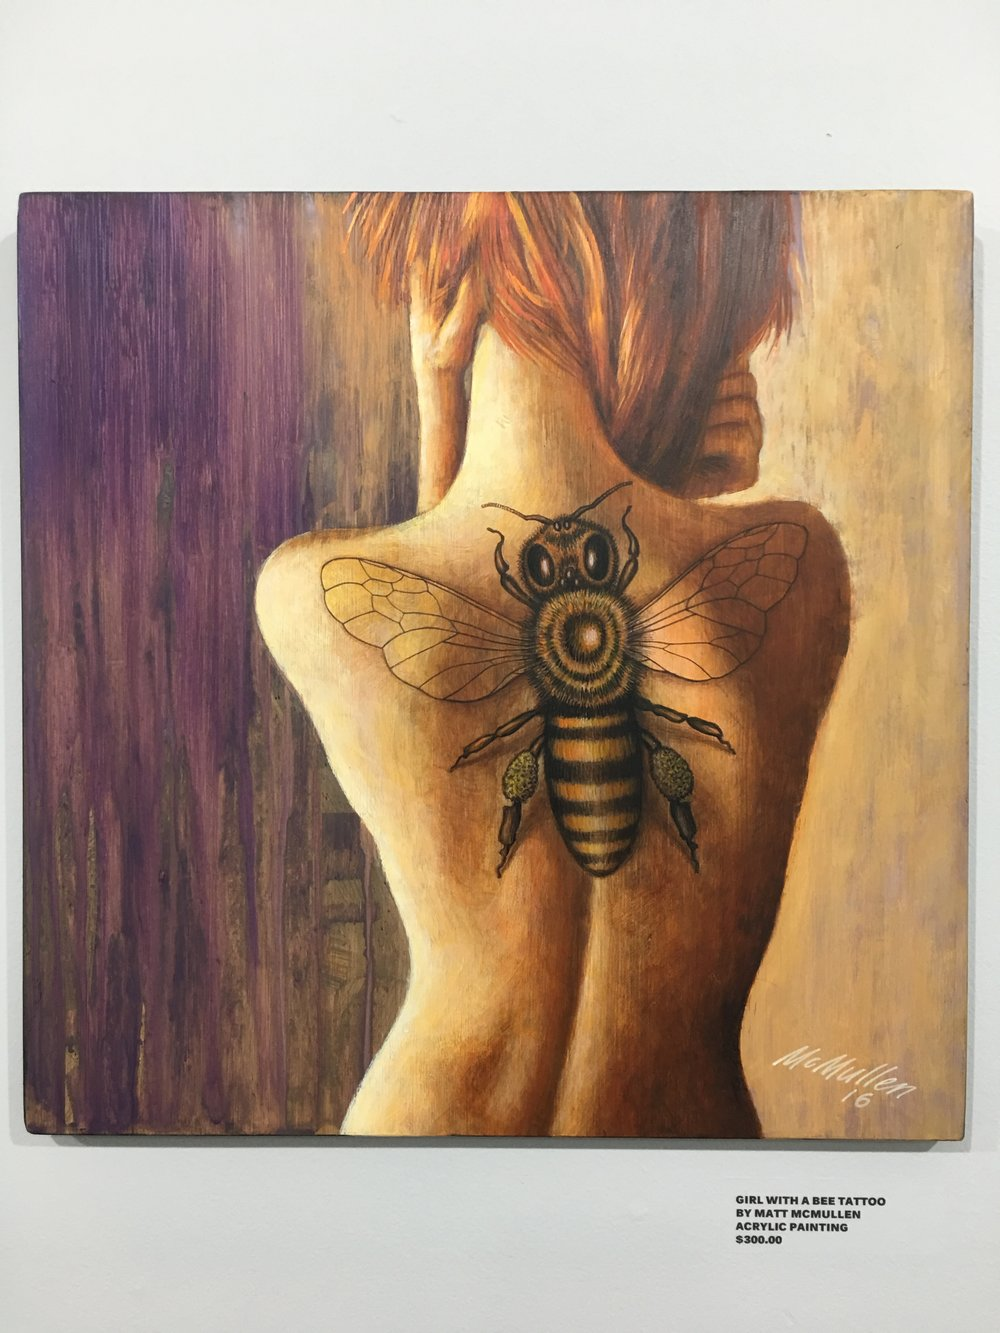 GIRL W/THE BEE TATTOO $250